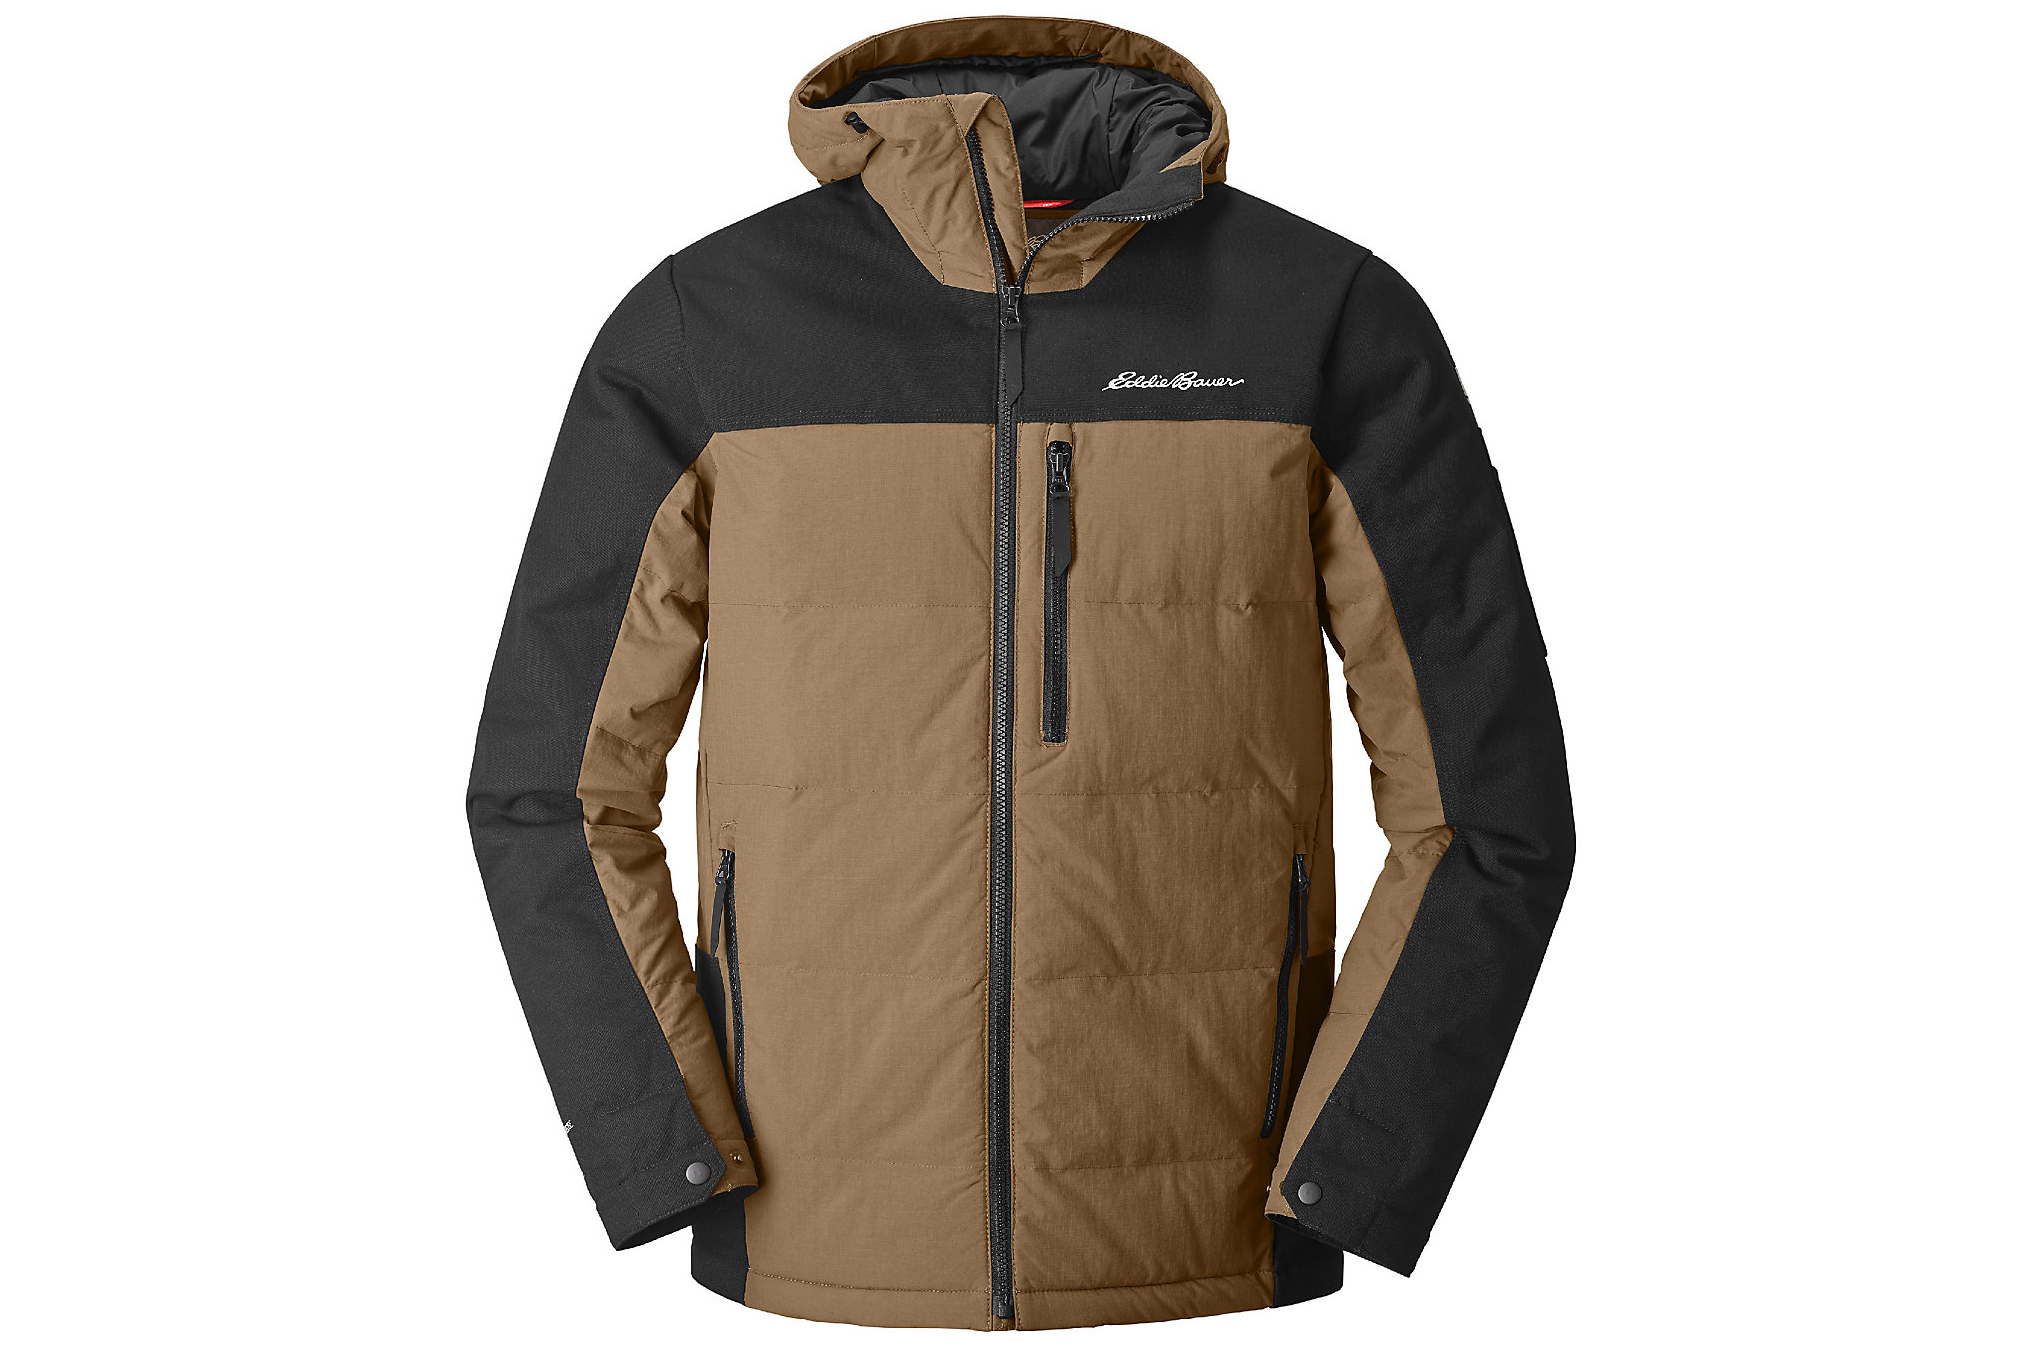 Eddie Bauer Mountain Ops down jacket